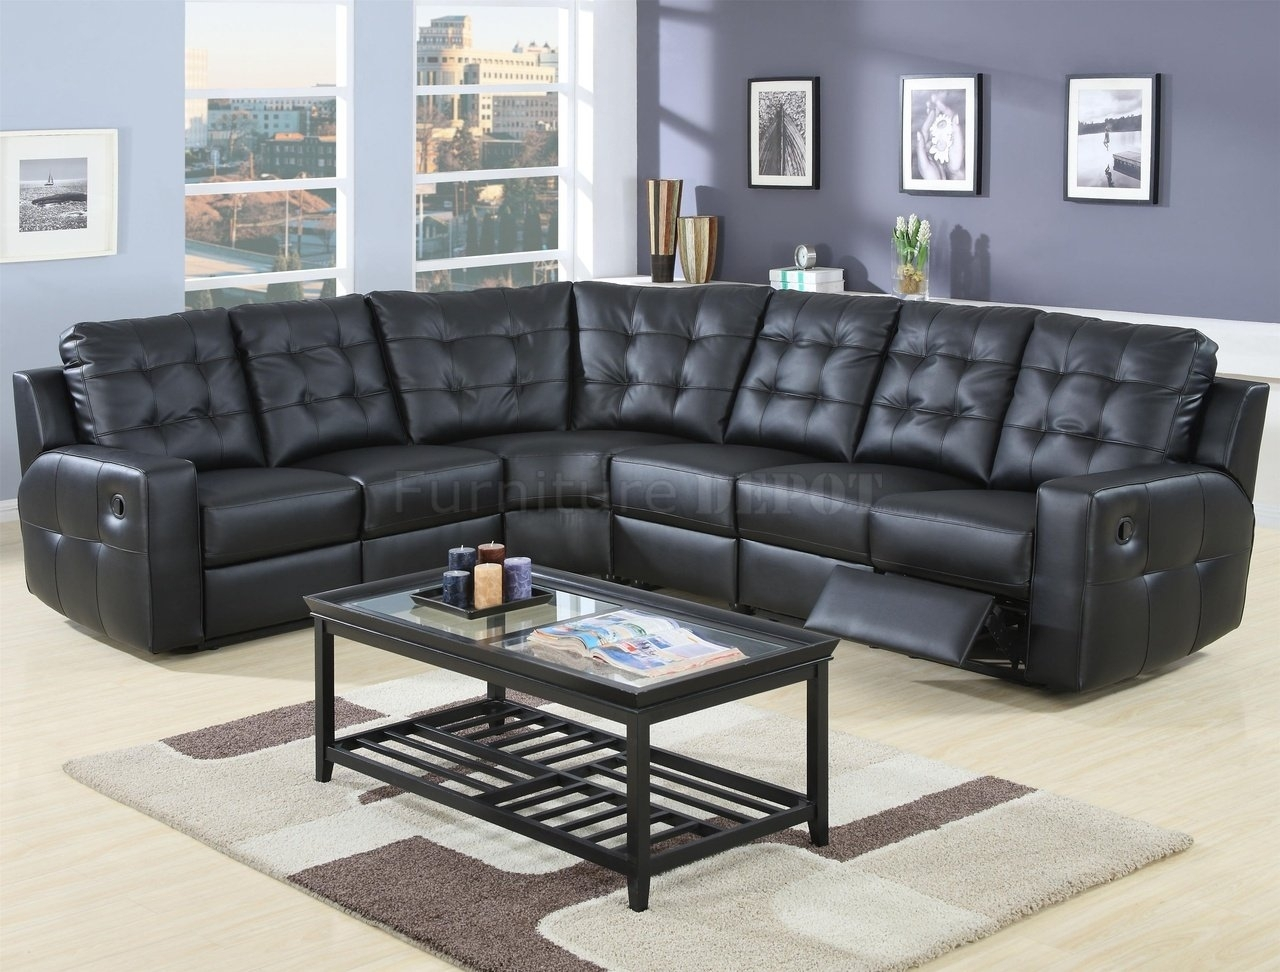 The Most Popular Sectional Sofas Austin Tx 80 On Leather Reclining Regarding Sectional Sofas At Austin (View 15 of 15)